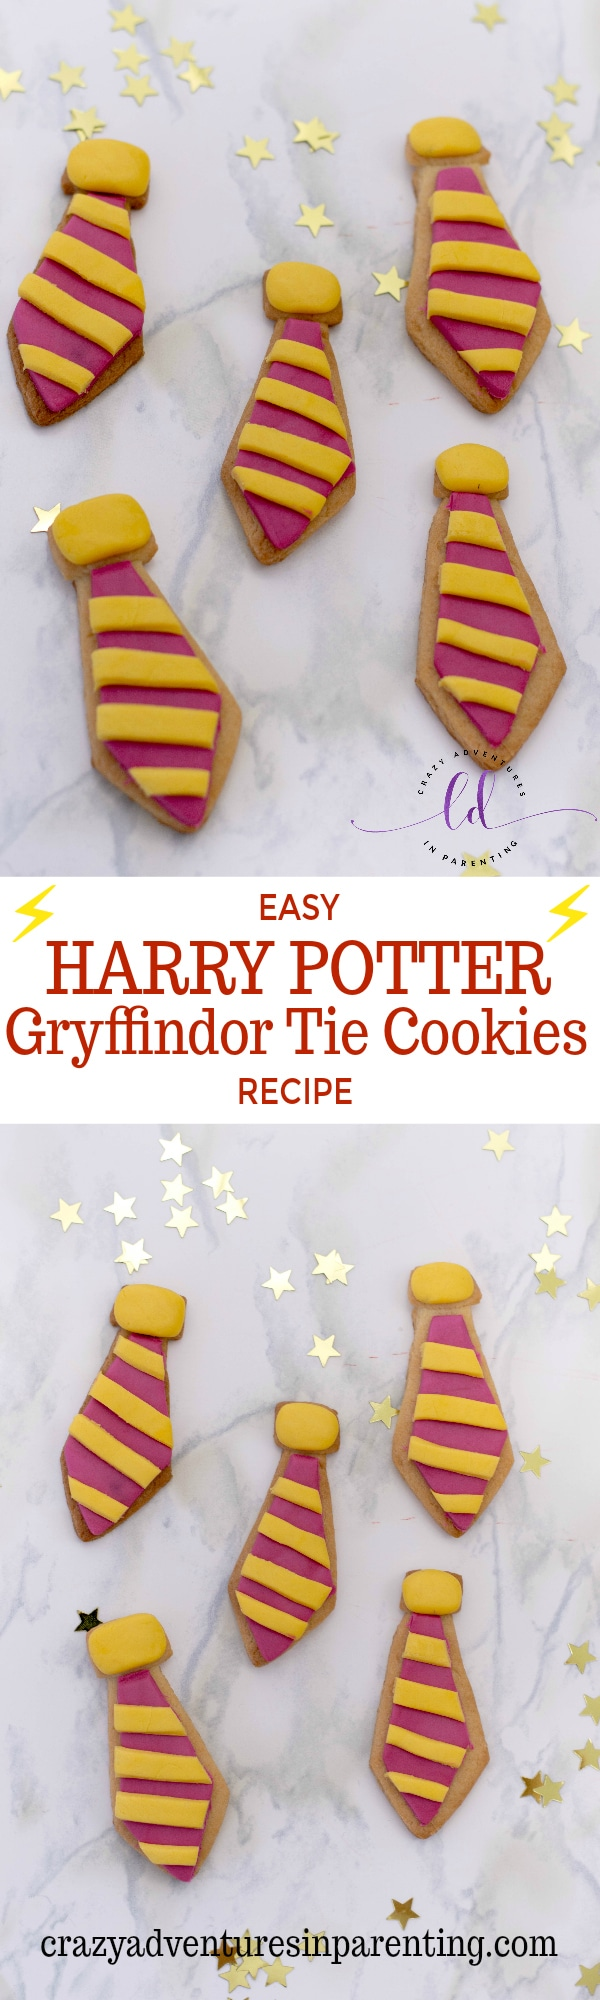 Easy Harry Potter Gryffindor Tie Cookies Recipe